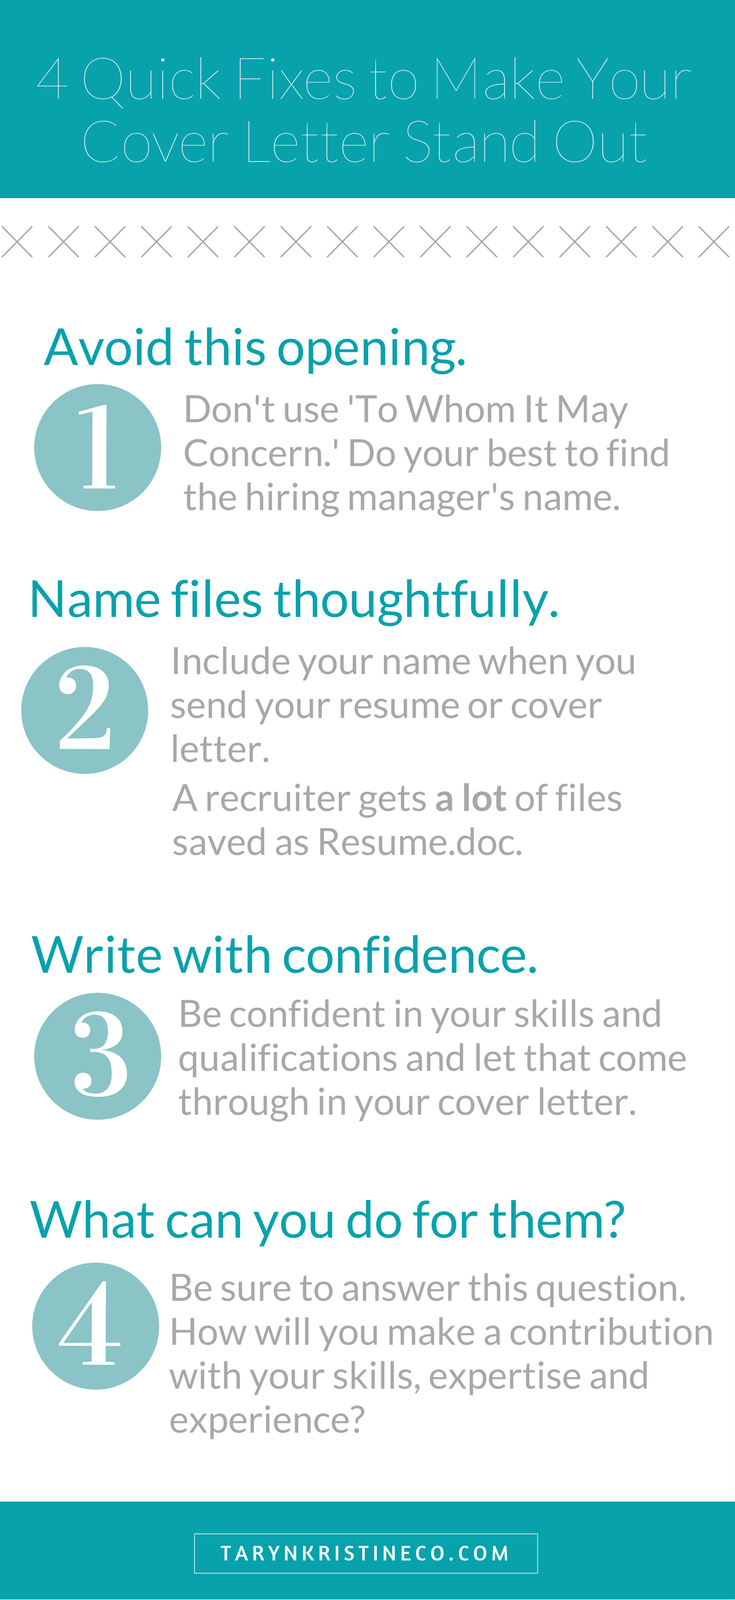 Four Quick Fixes To Make Your Cover Letter Stand Out Career Job